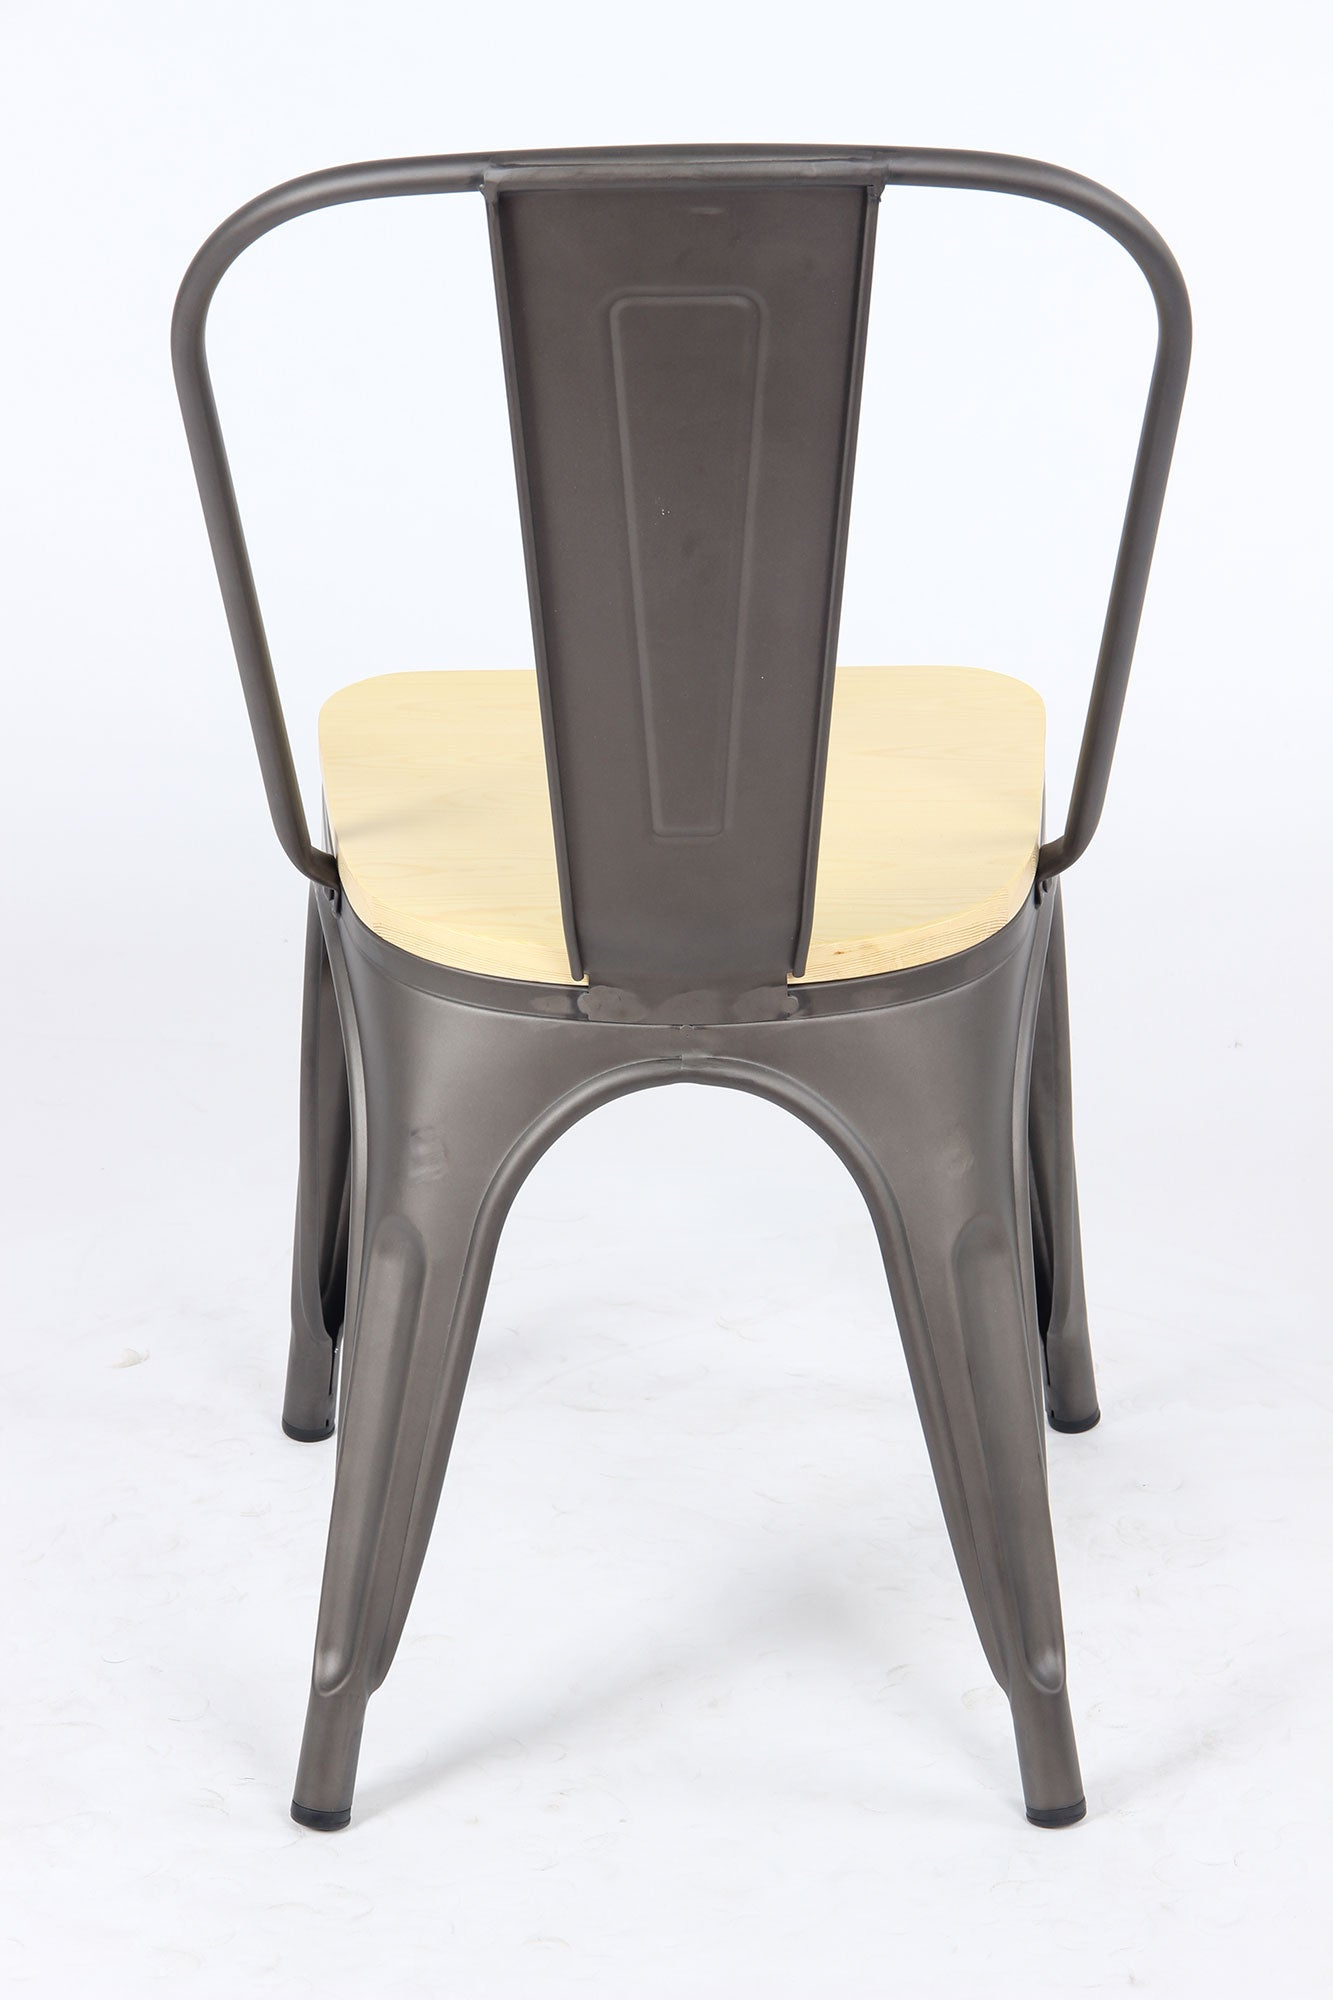 Sedia Legna Metal Chair - Gunmetal/Wood - BAANJA.CO.UK